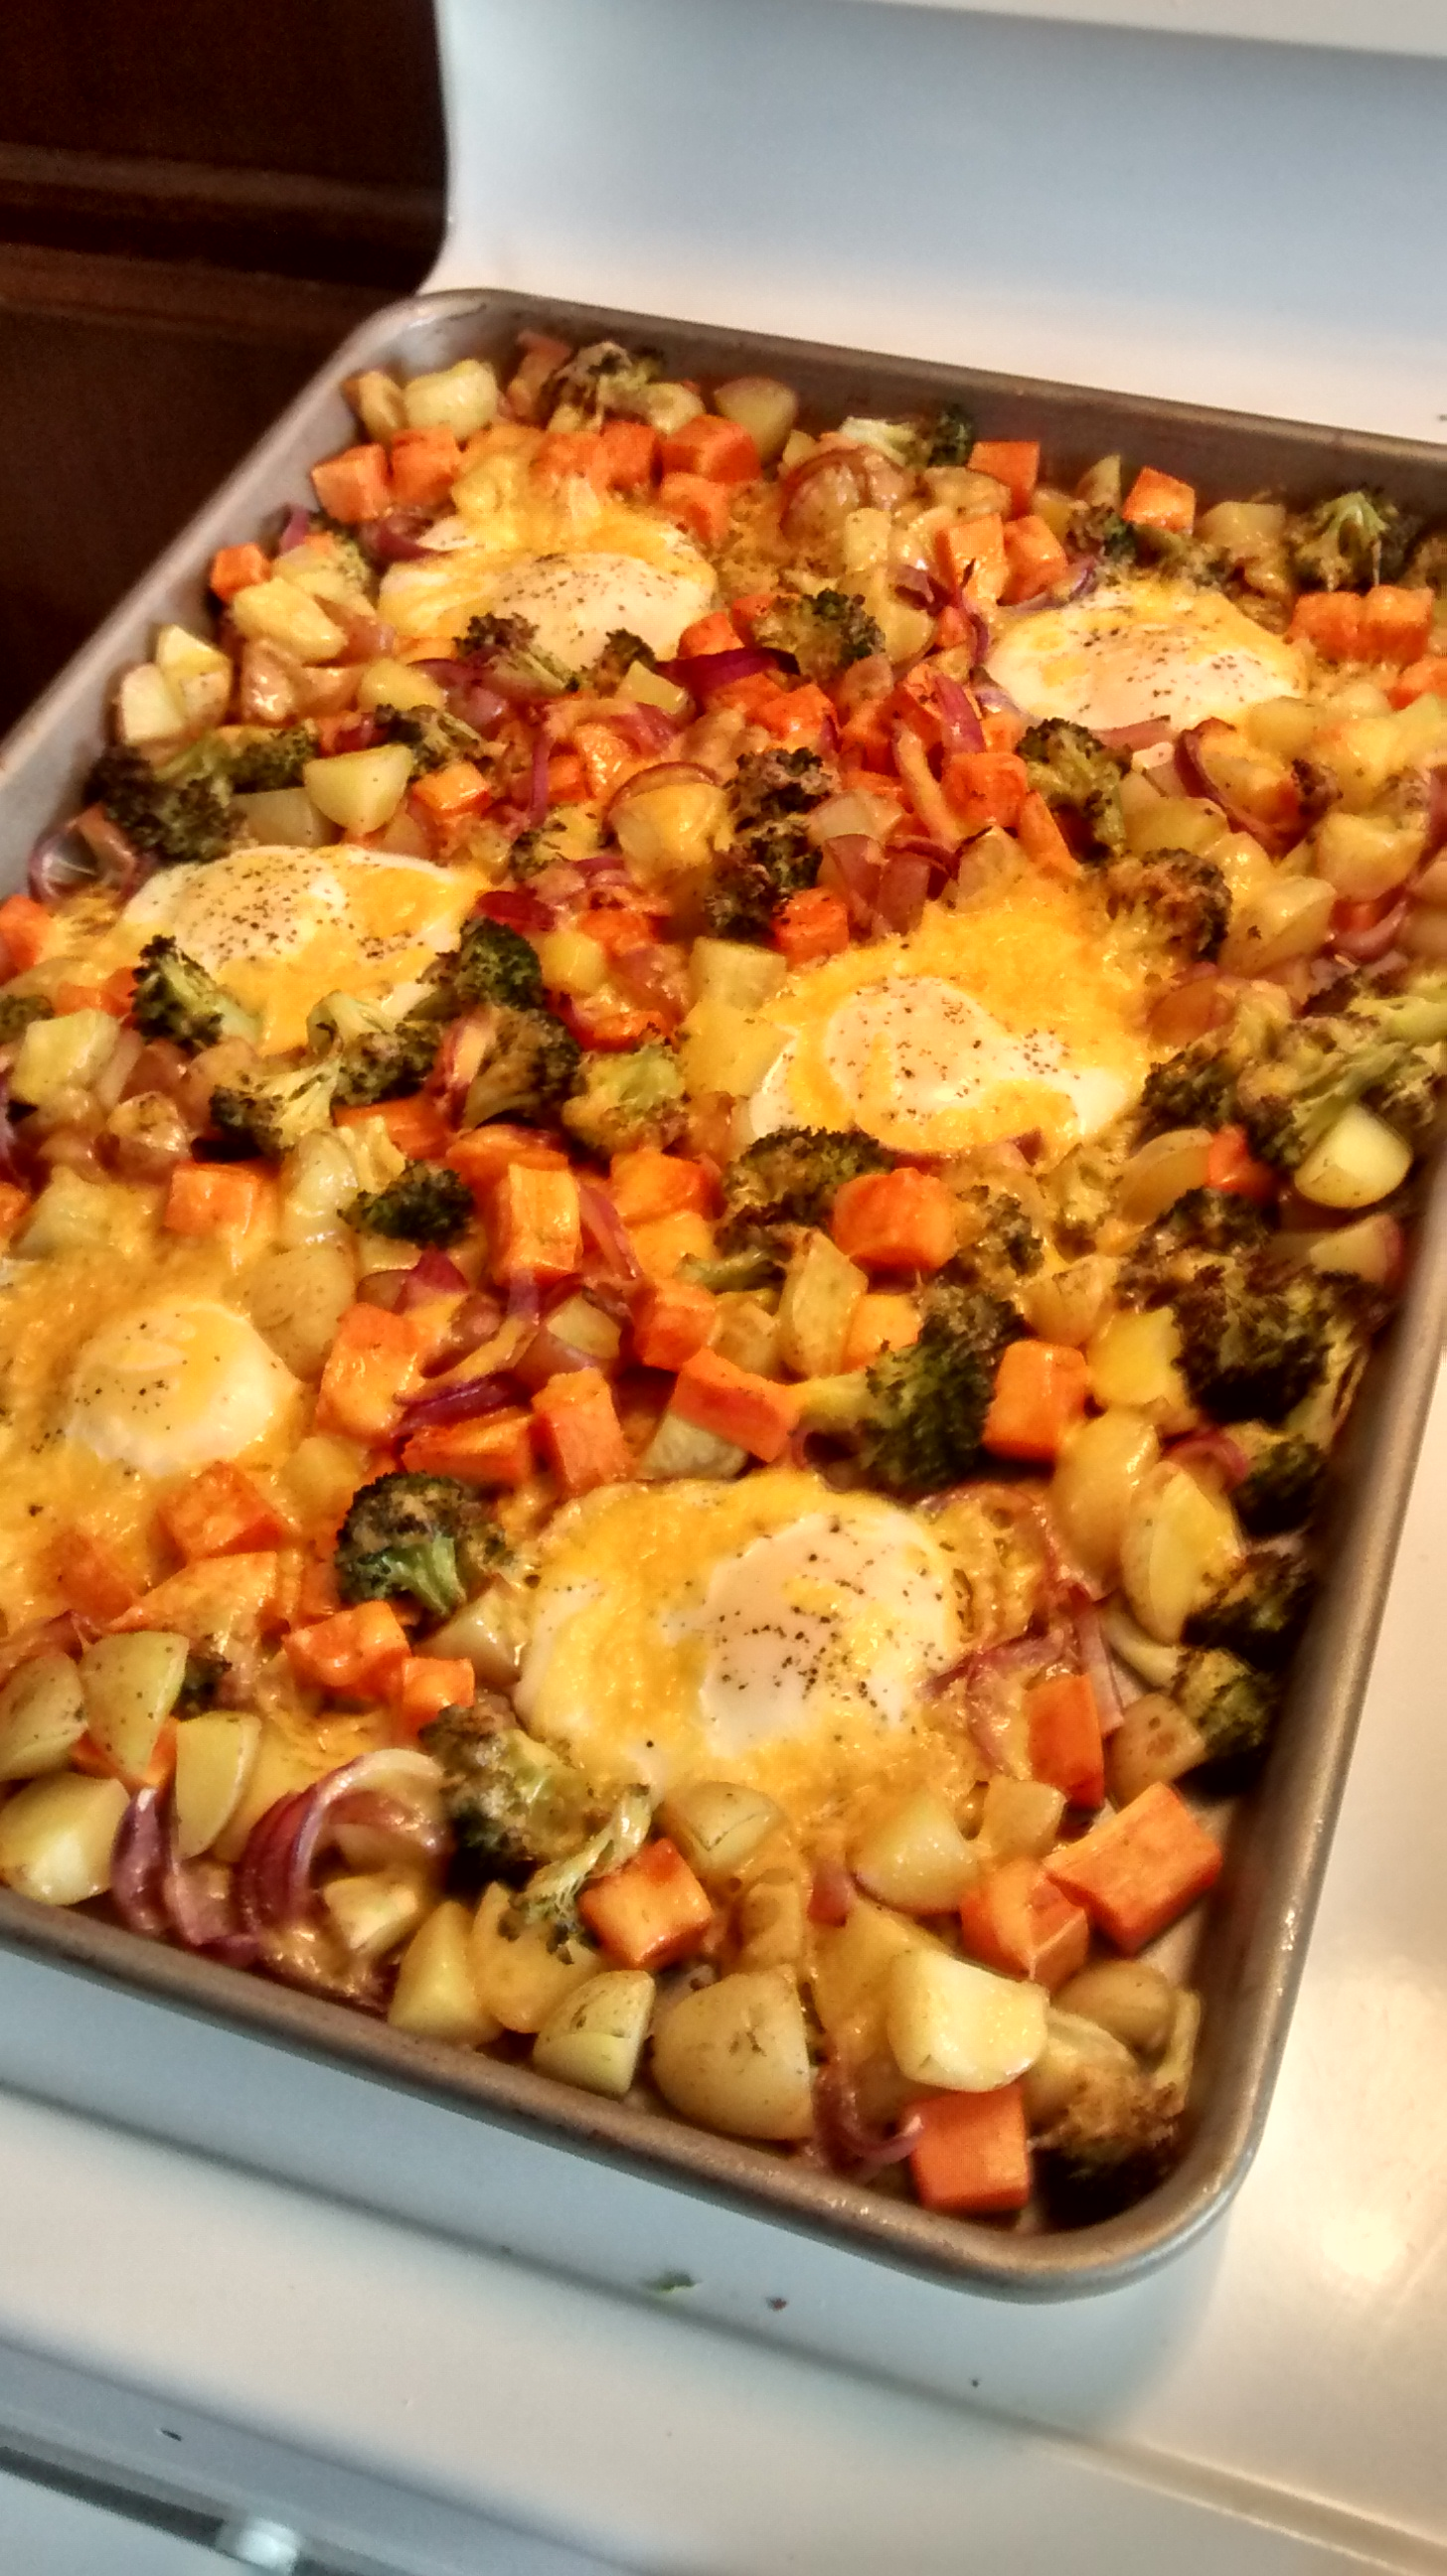 This recipe for Egg and Veggie Casserole, by Ashley Cook , is from The ...